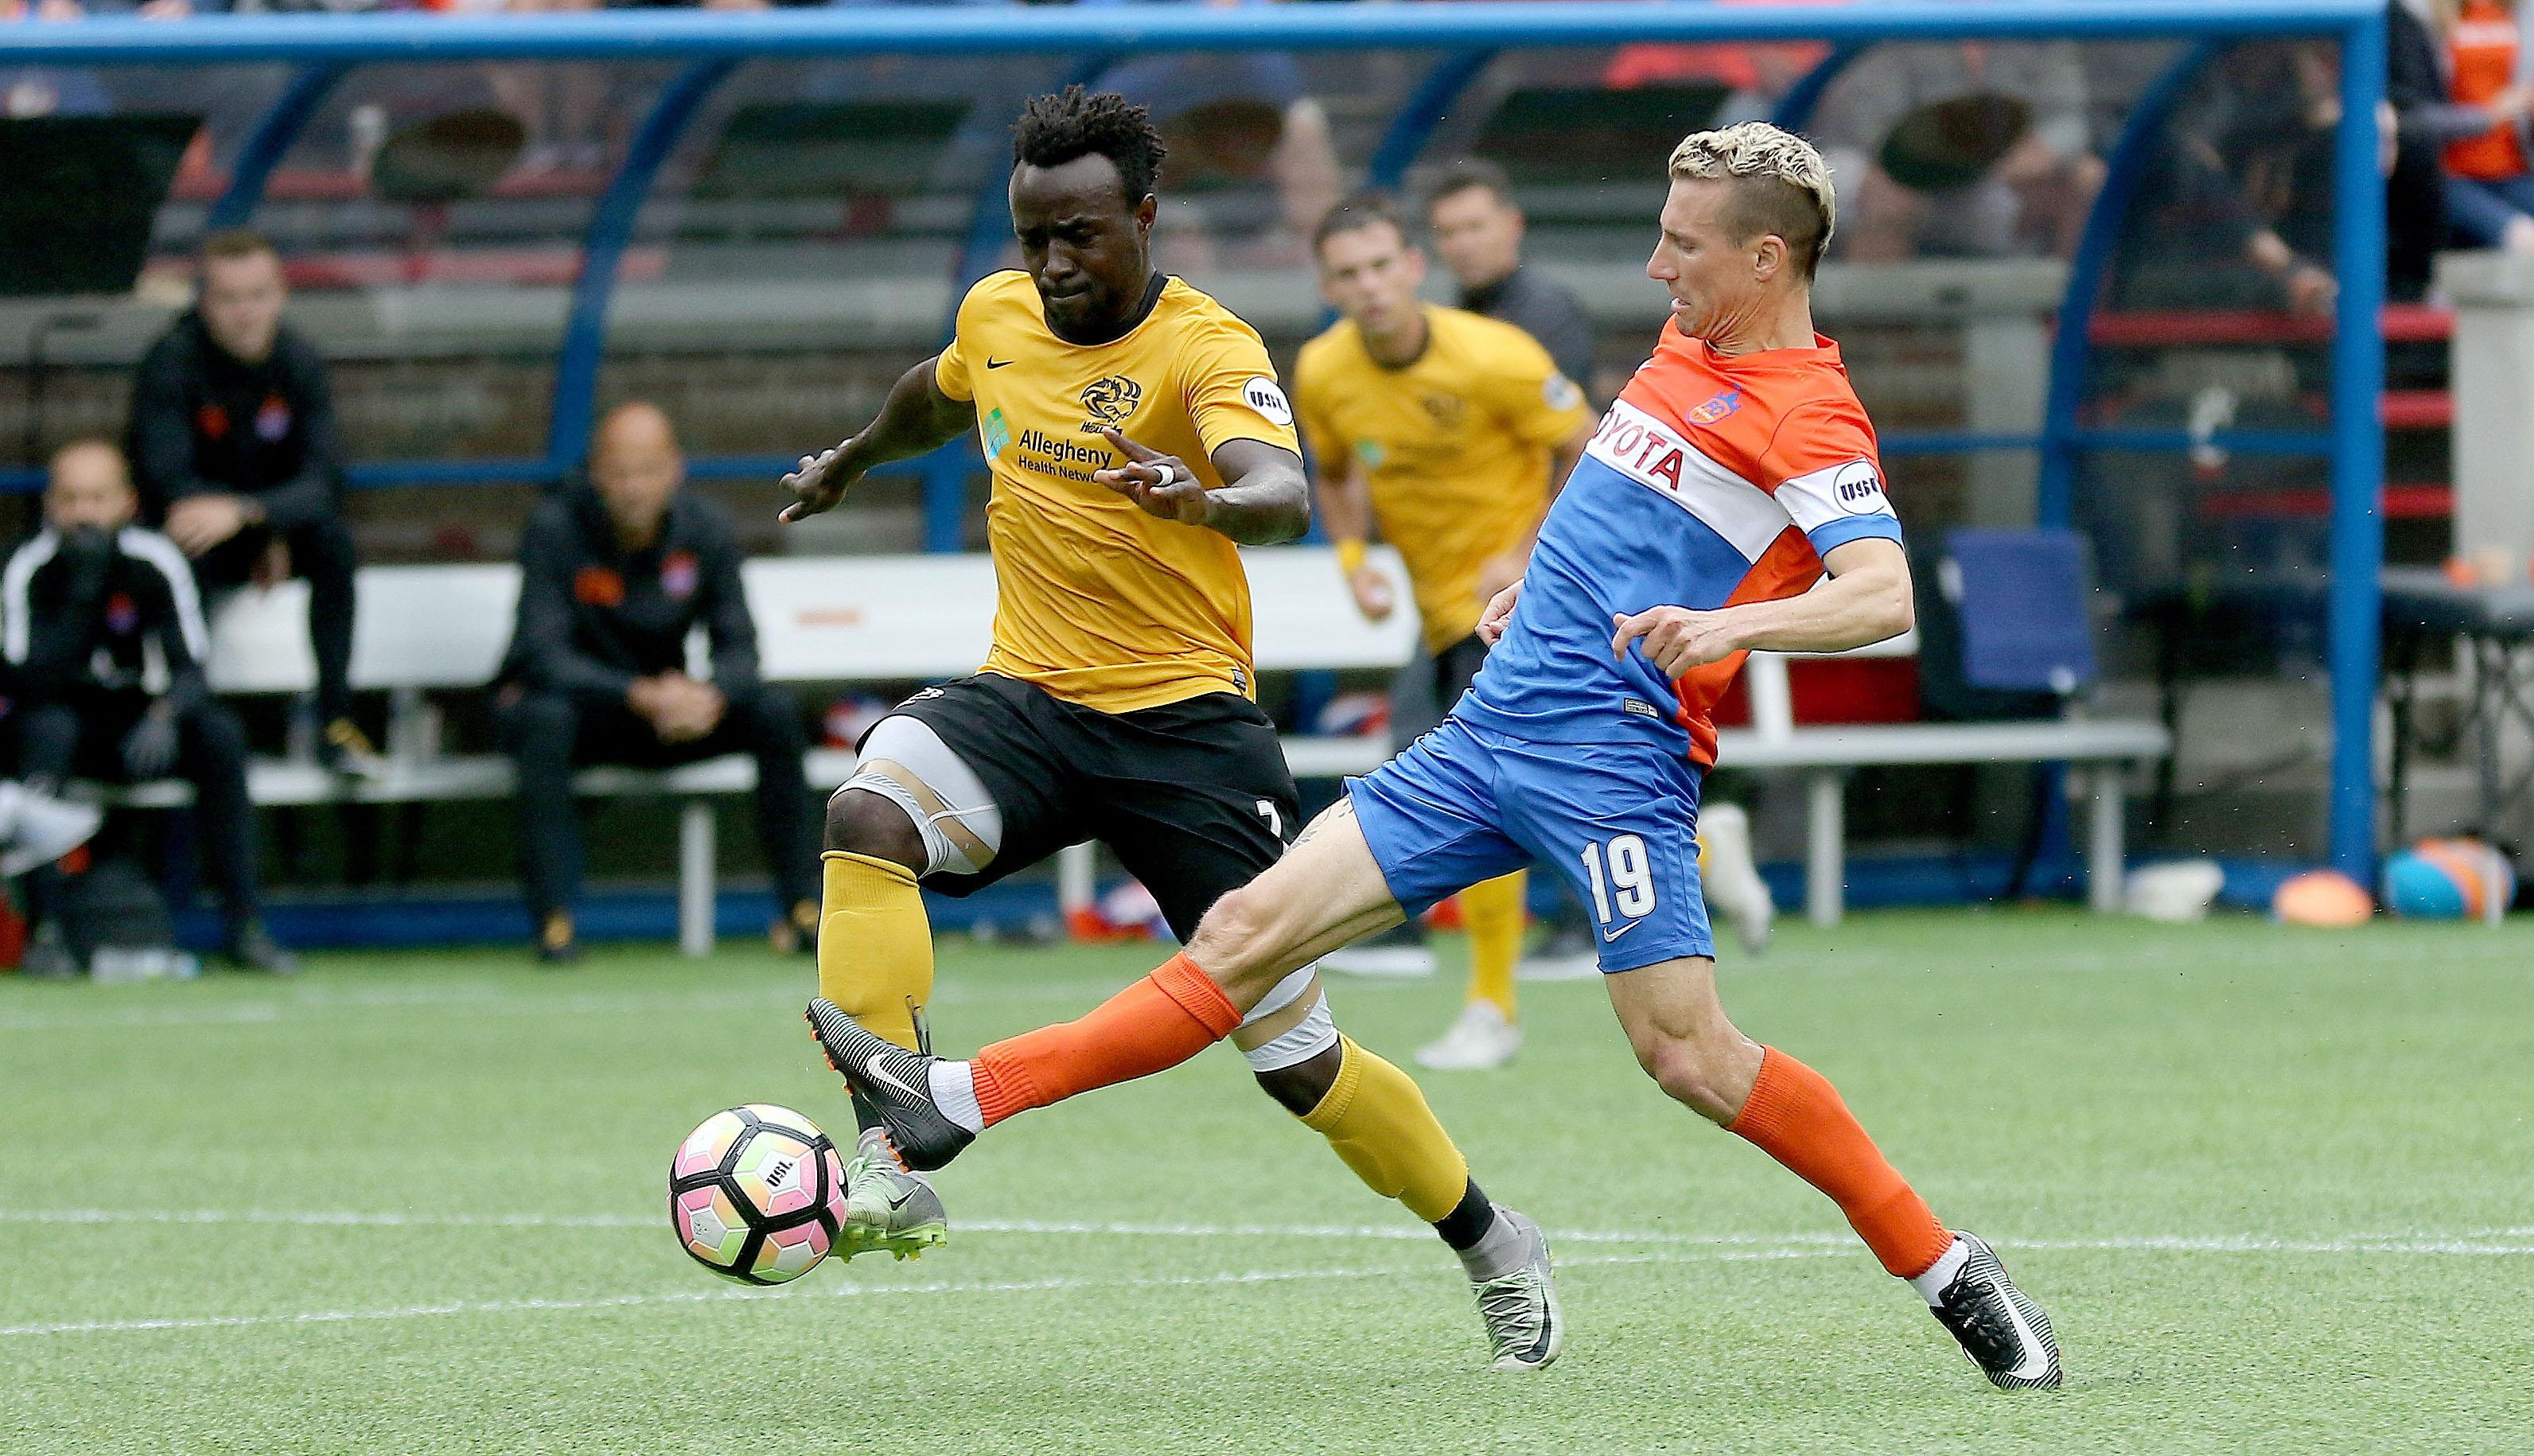 Andrew Wiedeman's goal in the 40th countered an early strike by Pittsburgh Riverhounds as the two teams played to a 1-1 draw Sat. evening in front of 22,643 at Nippert Stadium (WKRC/Tony Tribble)